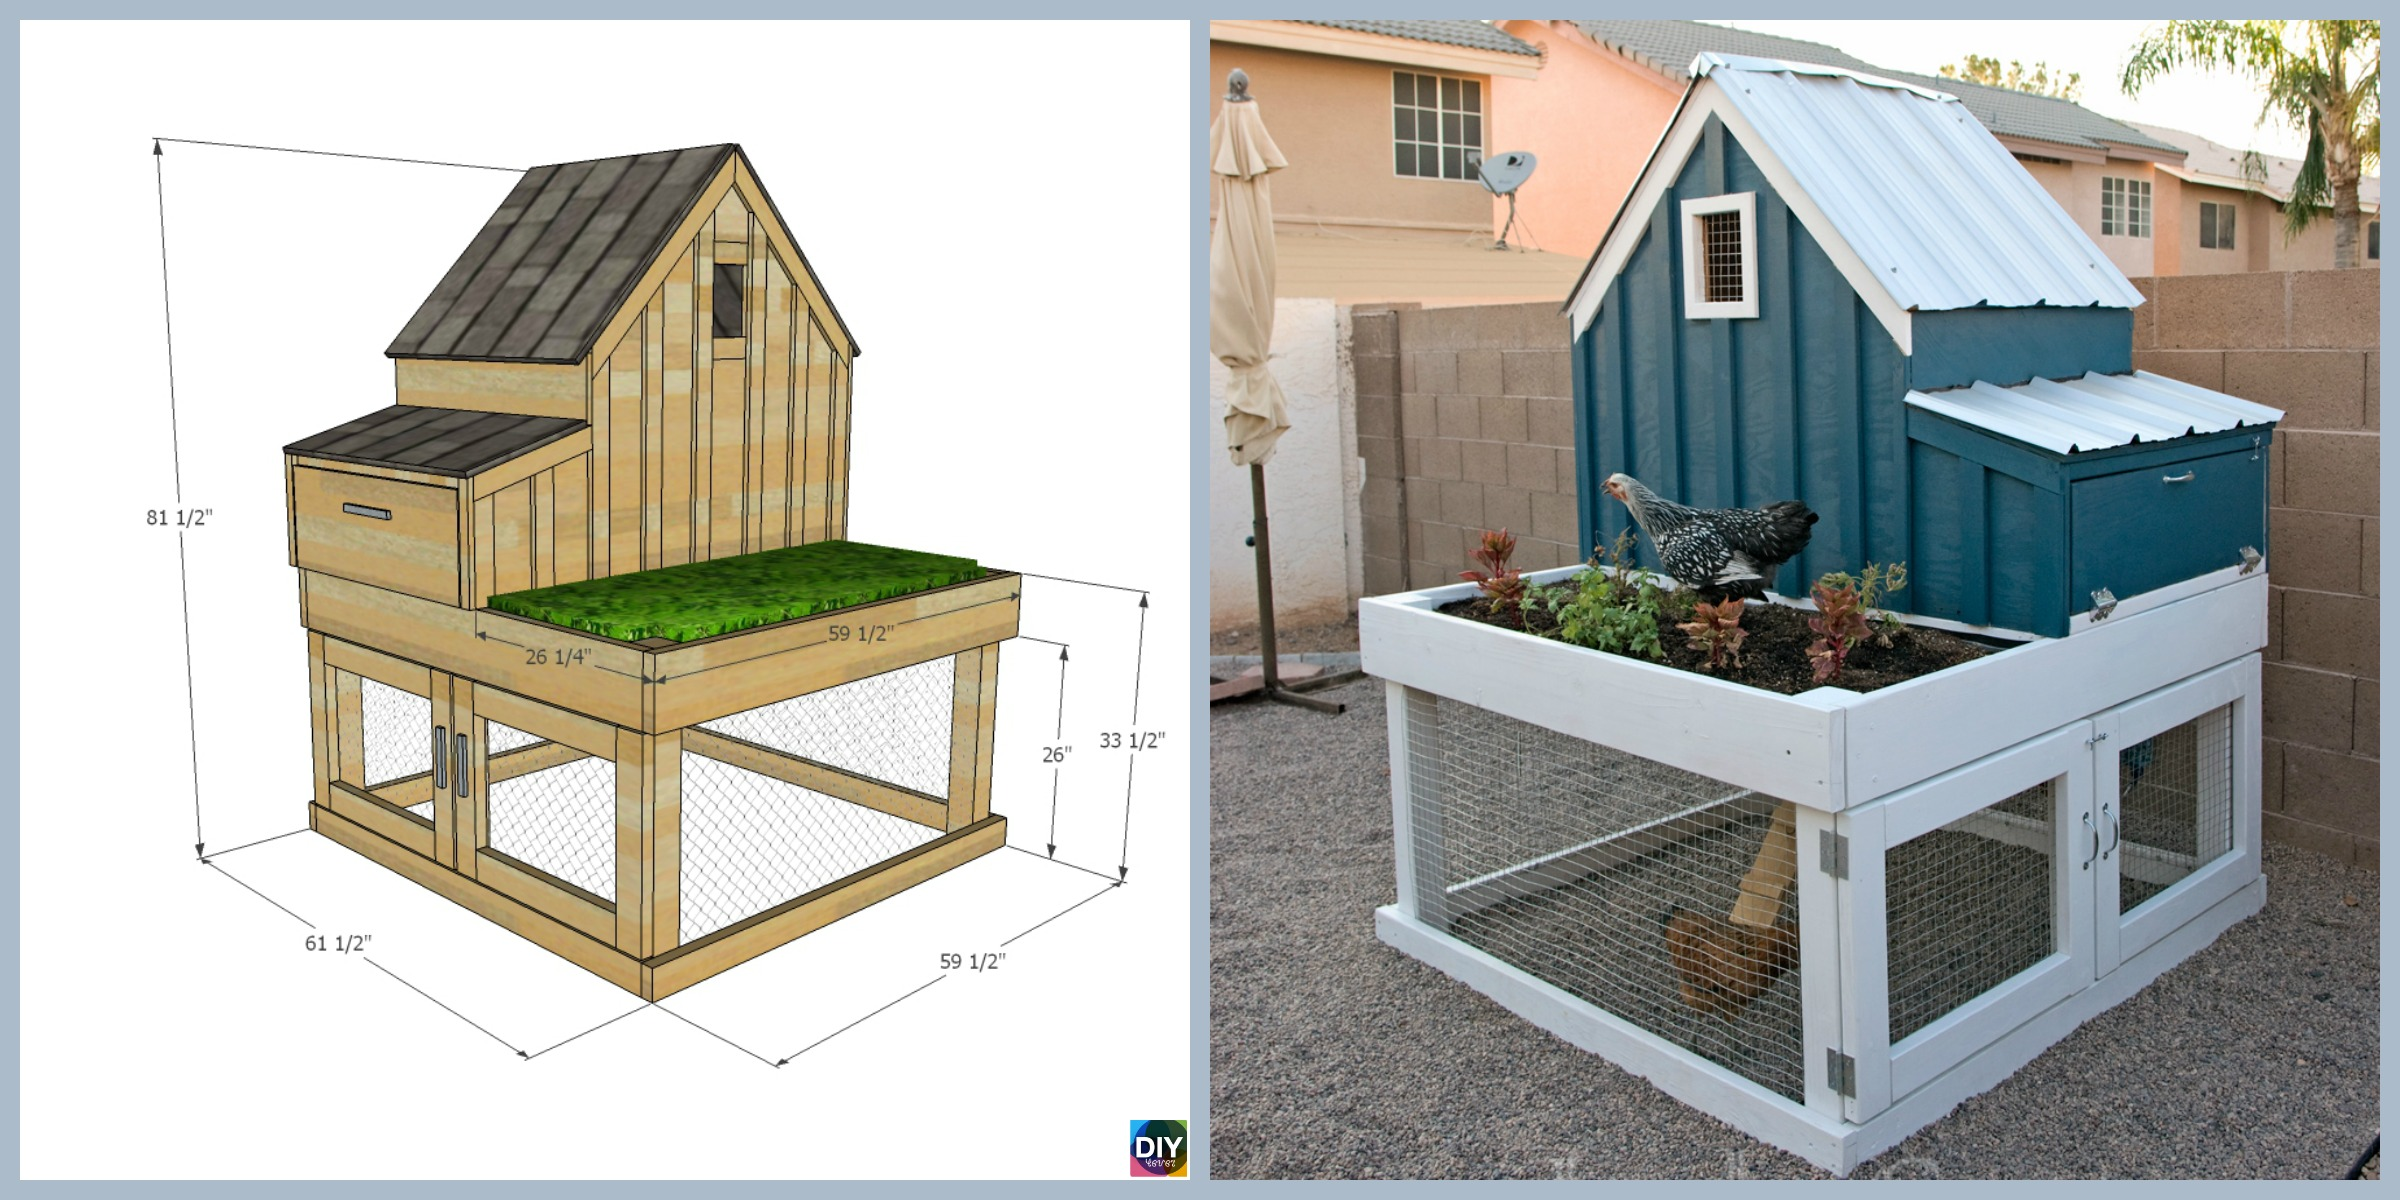 How to DIY Chicken Coop with Planter